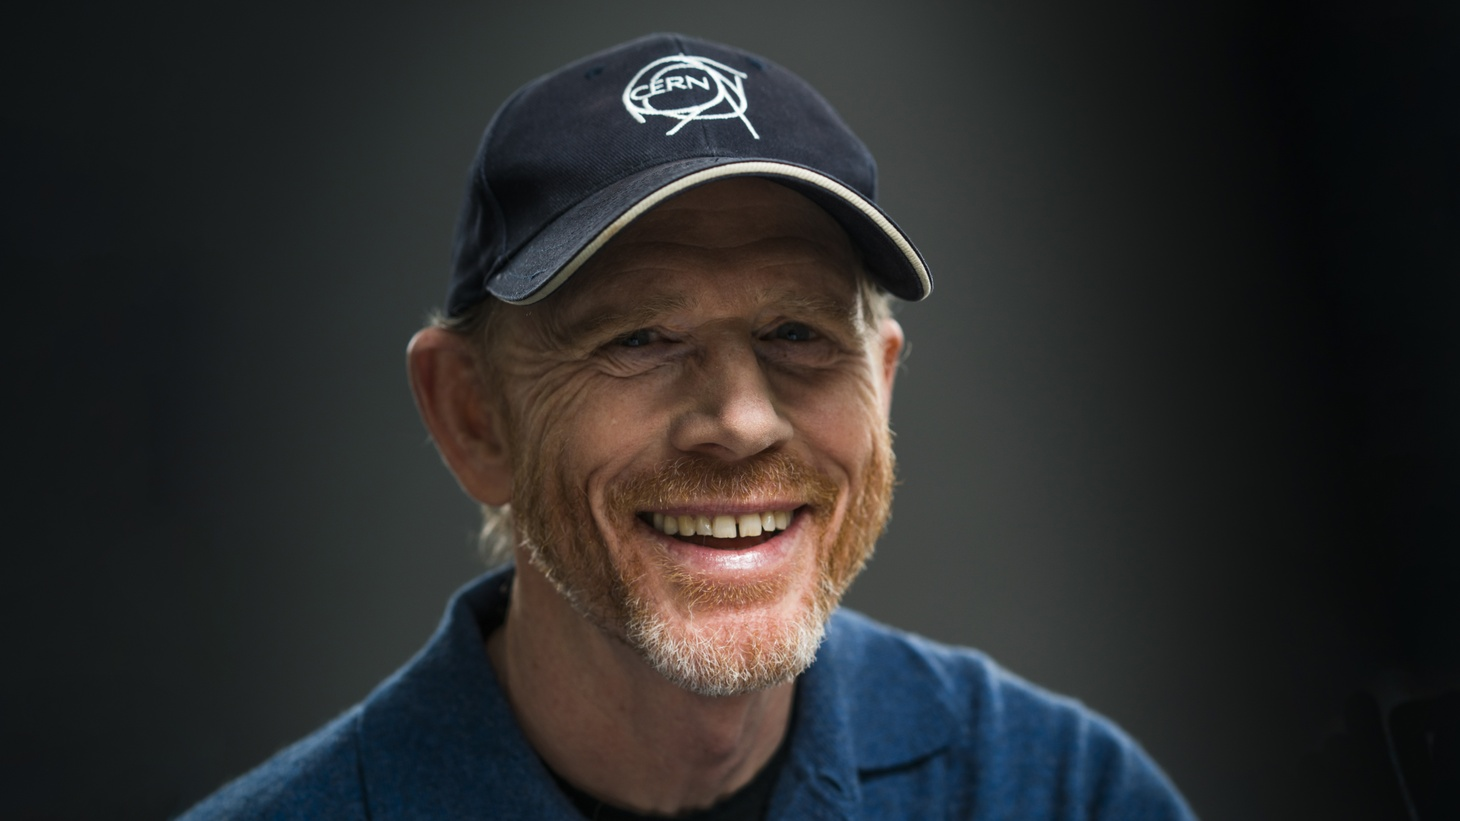 Ron Howard, Director/Producer, National Geographic's REBUILDING PARADISE.